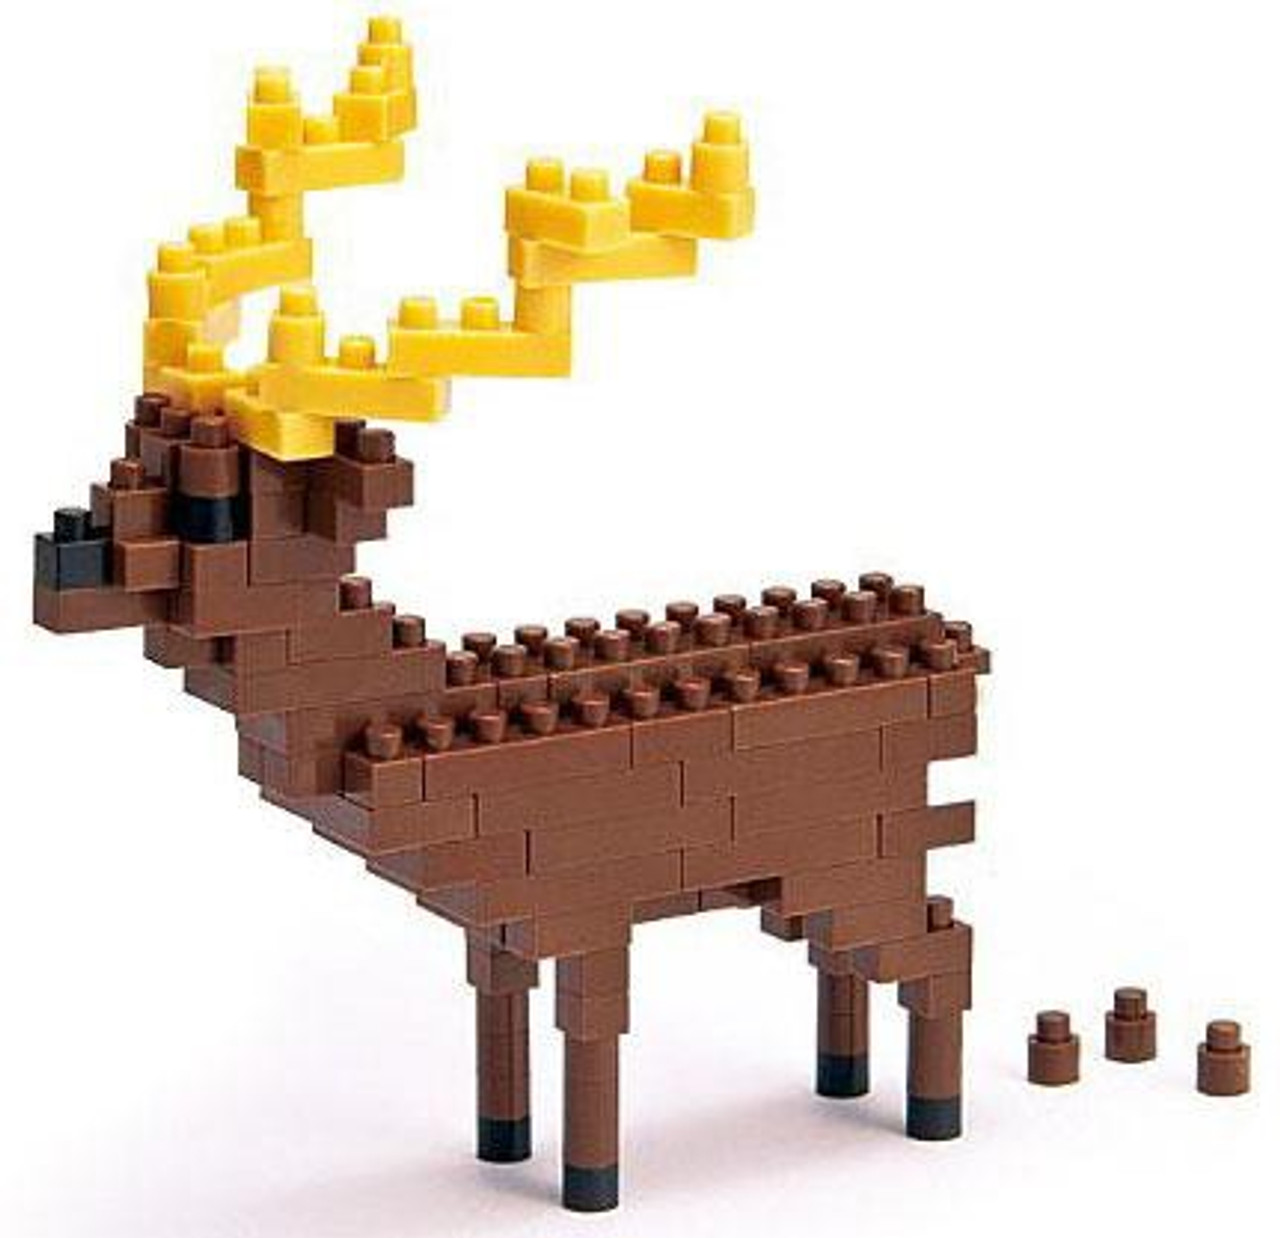 Nanoblock Micro-Sized Building Block Sika Deer Figure Set